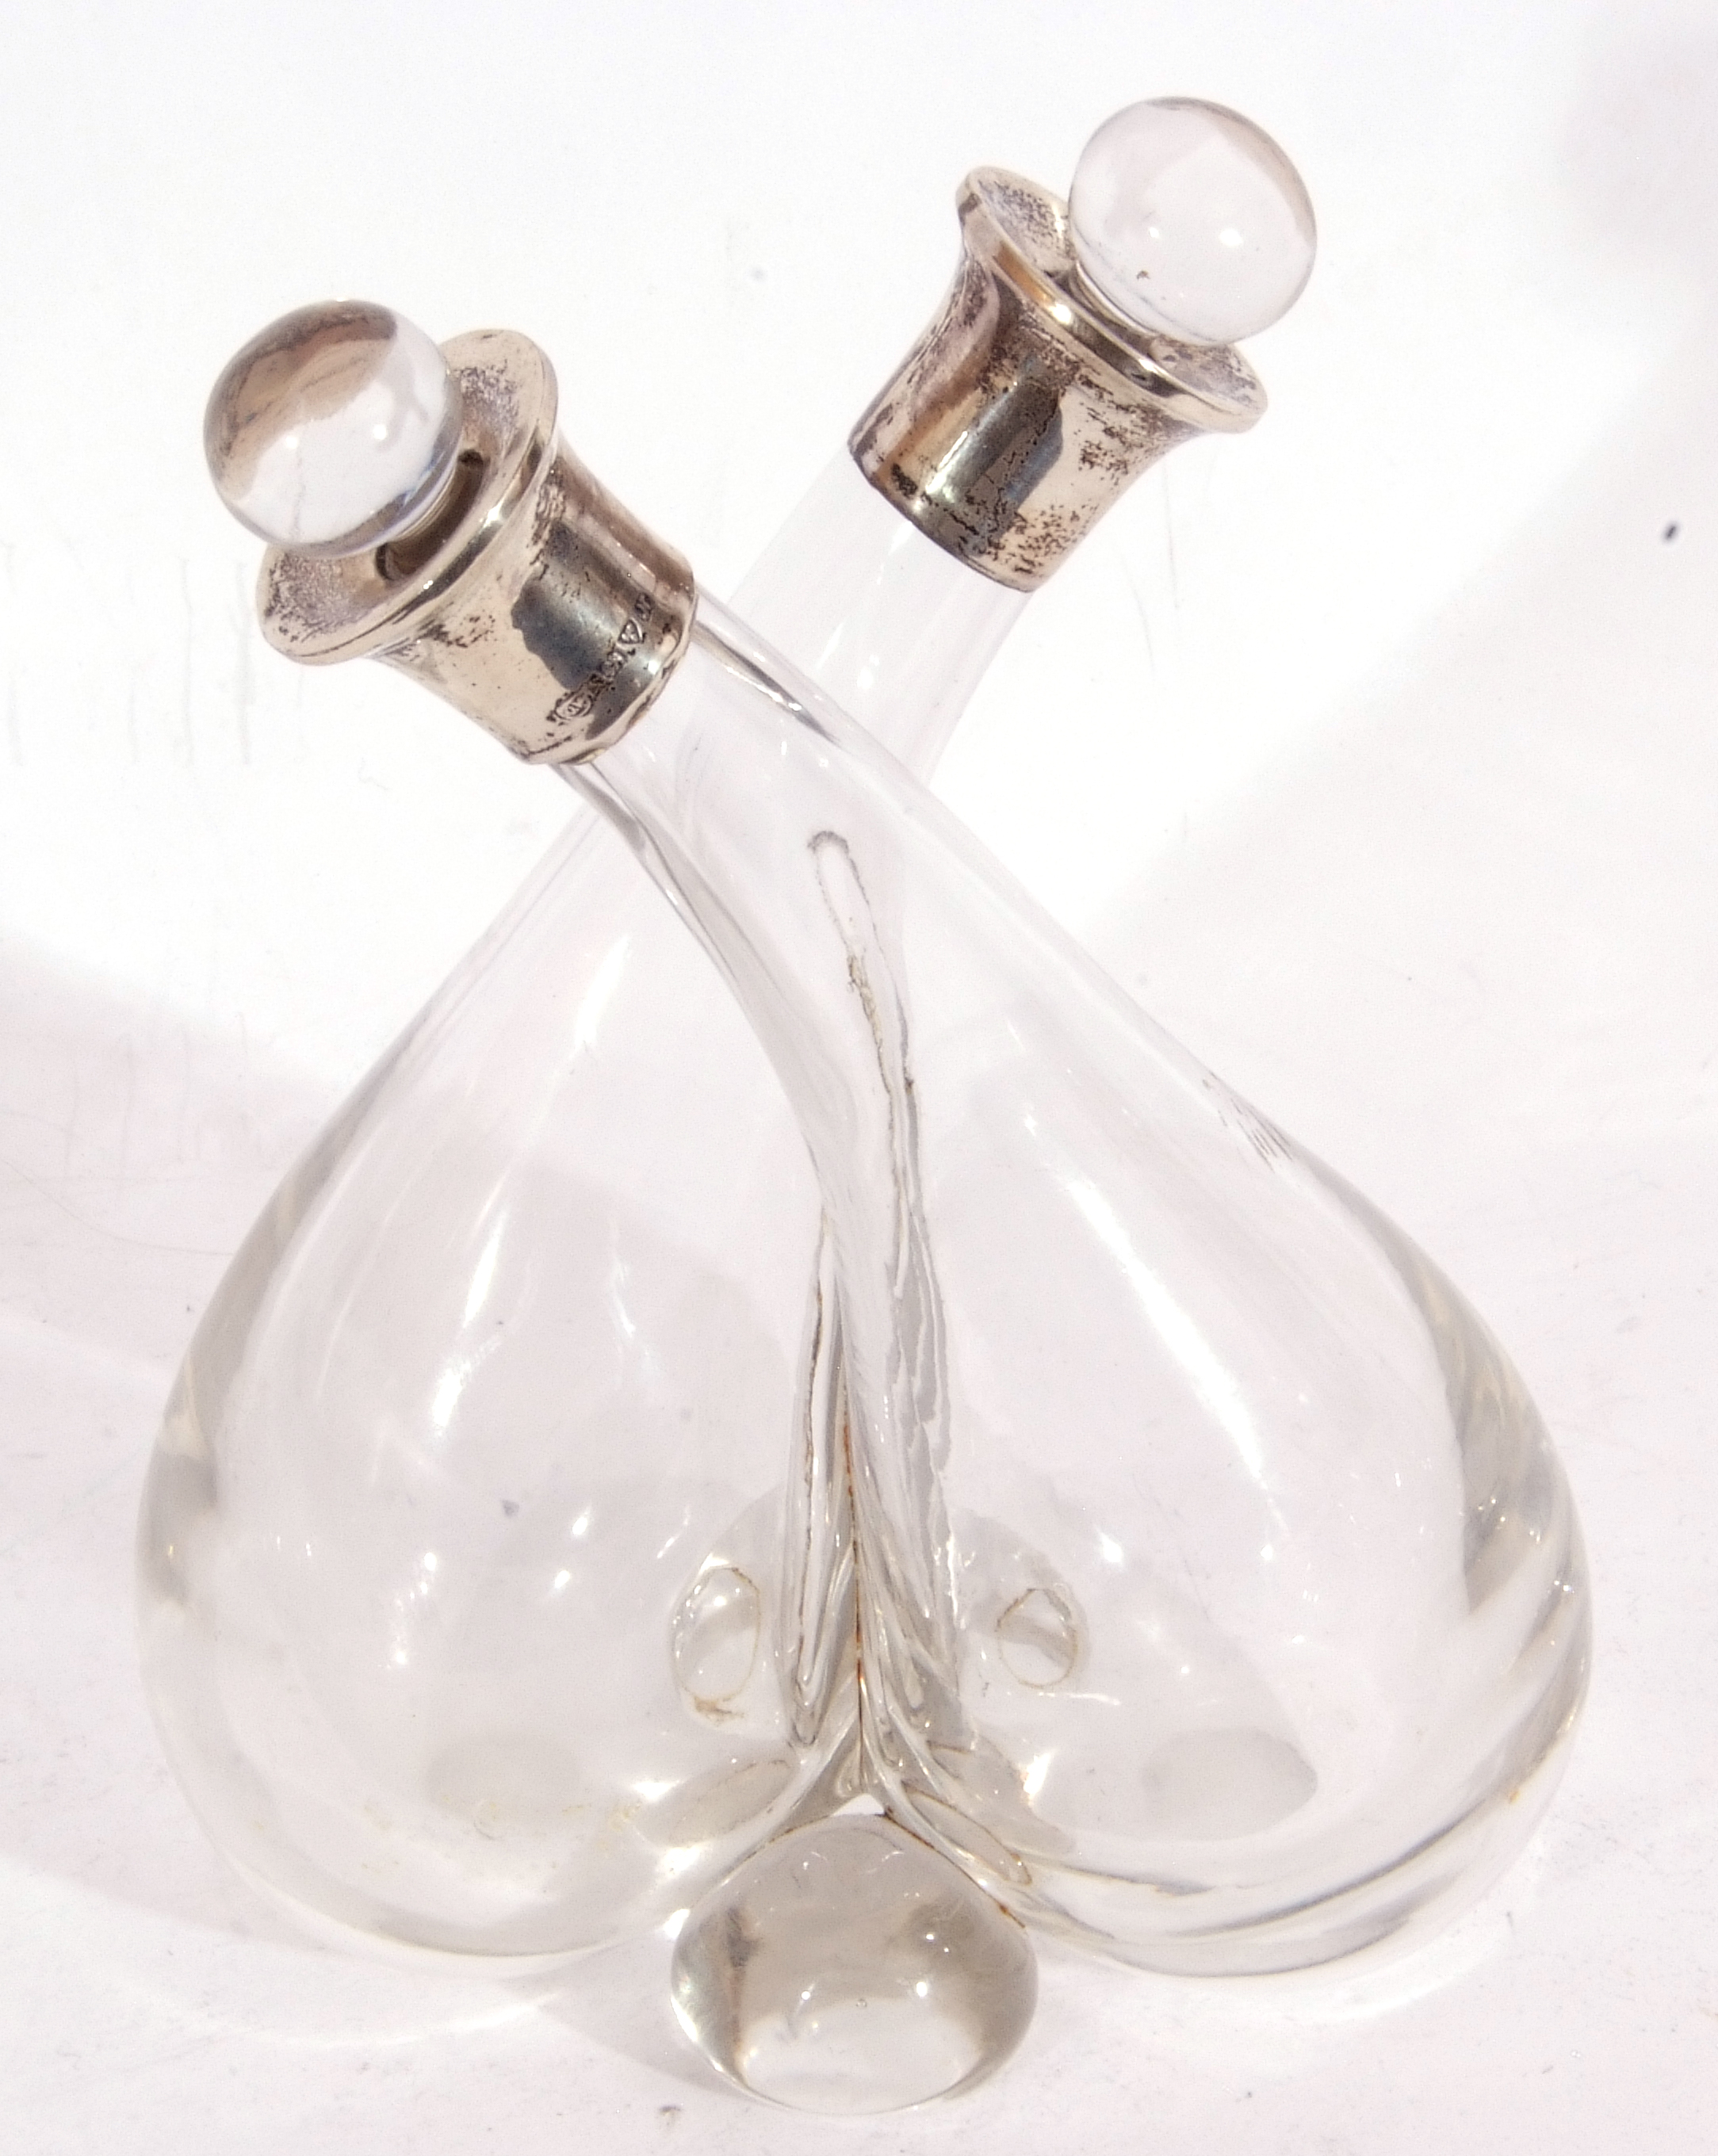 Silver mounted double vinegar and oil bottle, formed as two aubergine shaped glass bottles with - Image 4 of 7